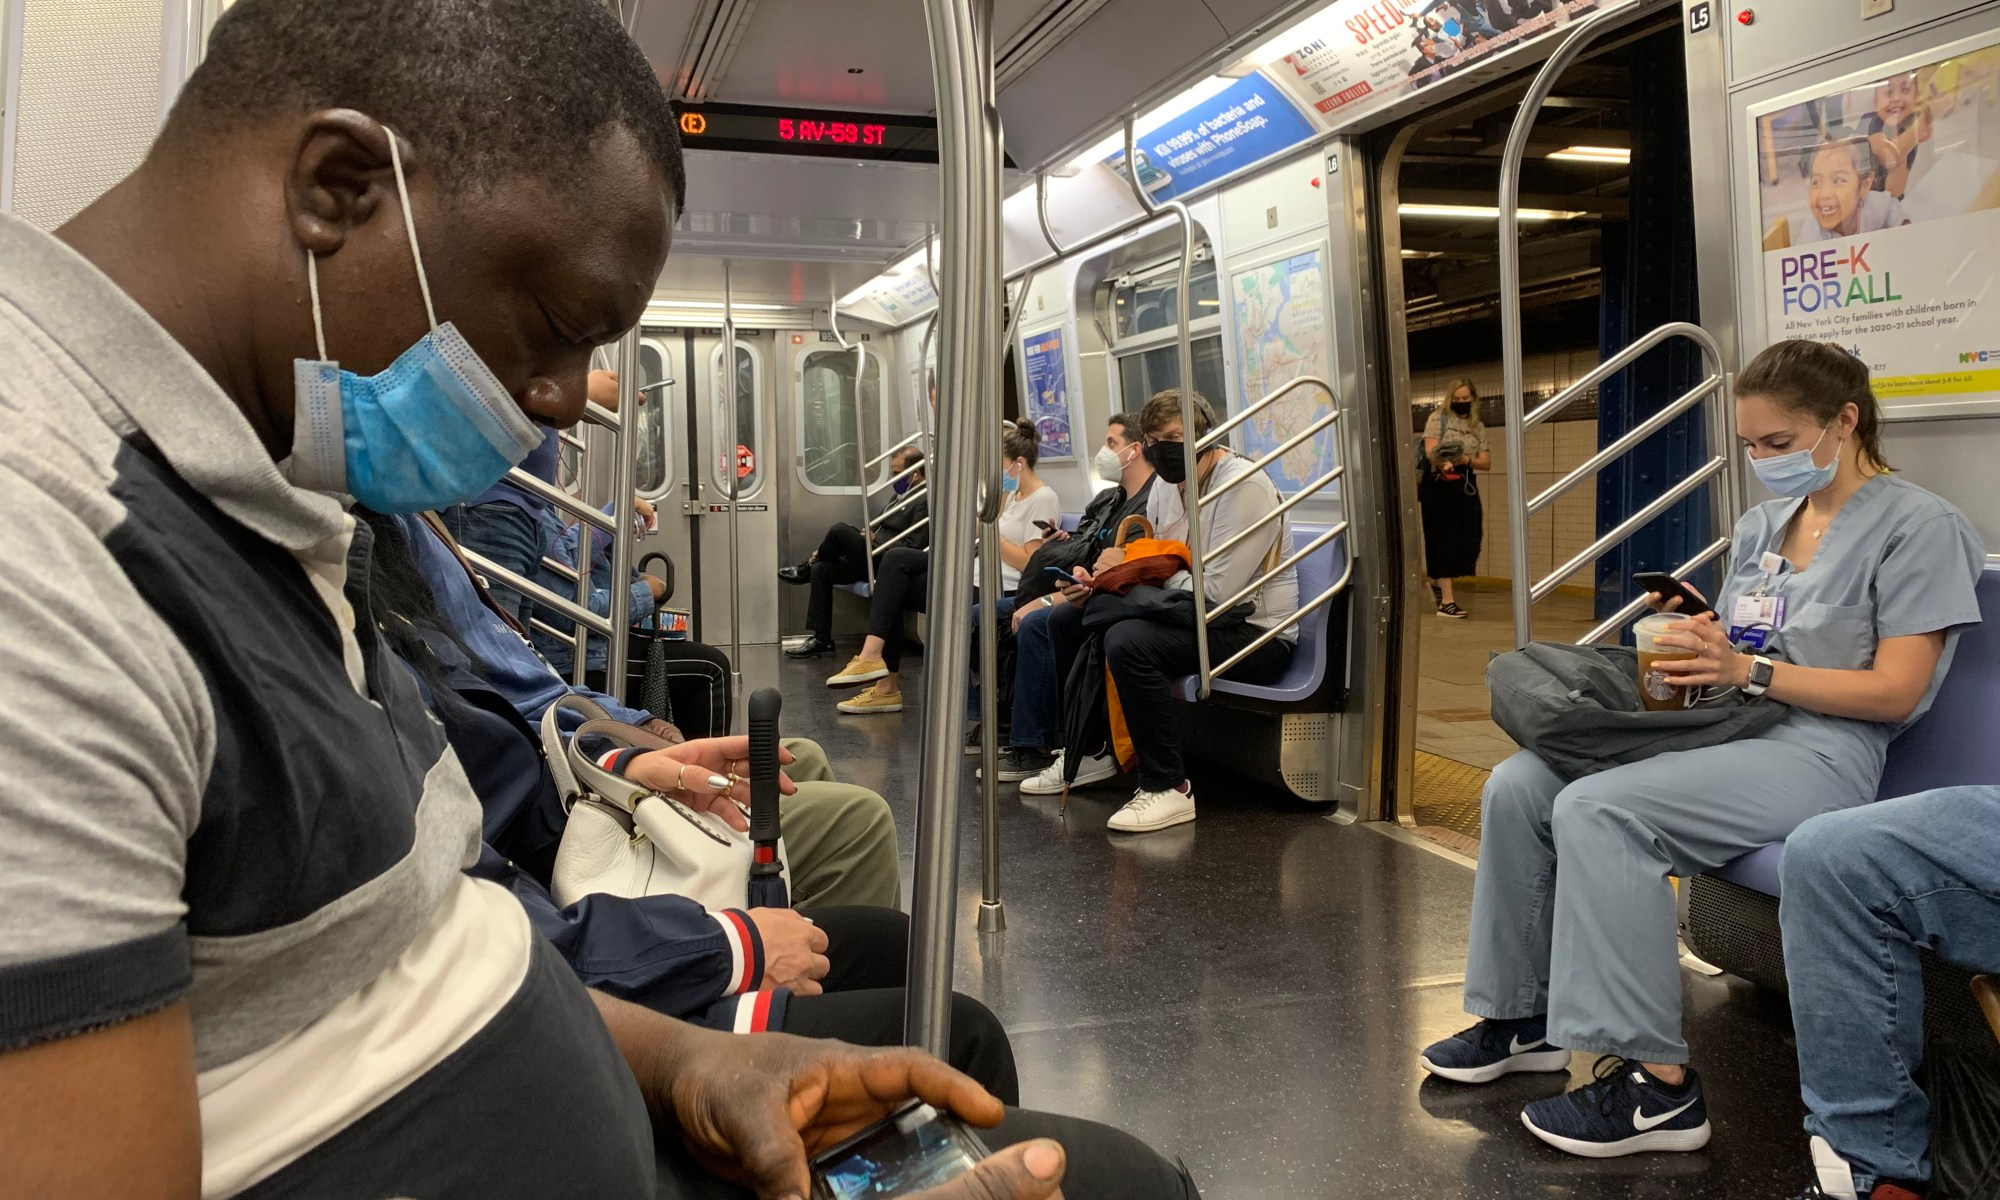 People wearing masks on a NYC subway train. Photo by ConsumerMojo.com